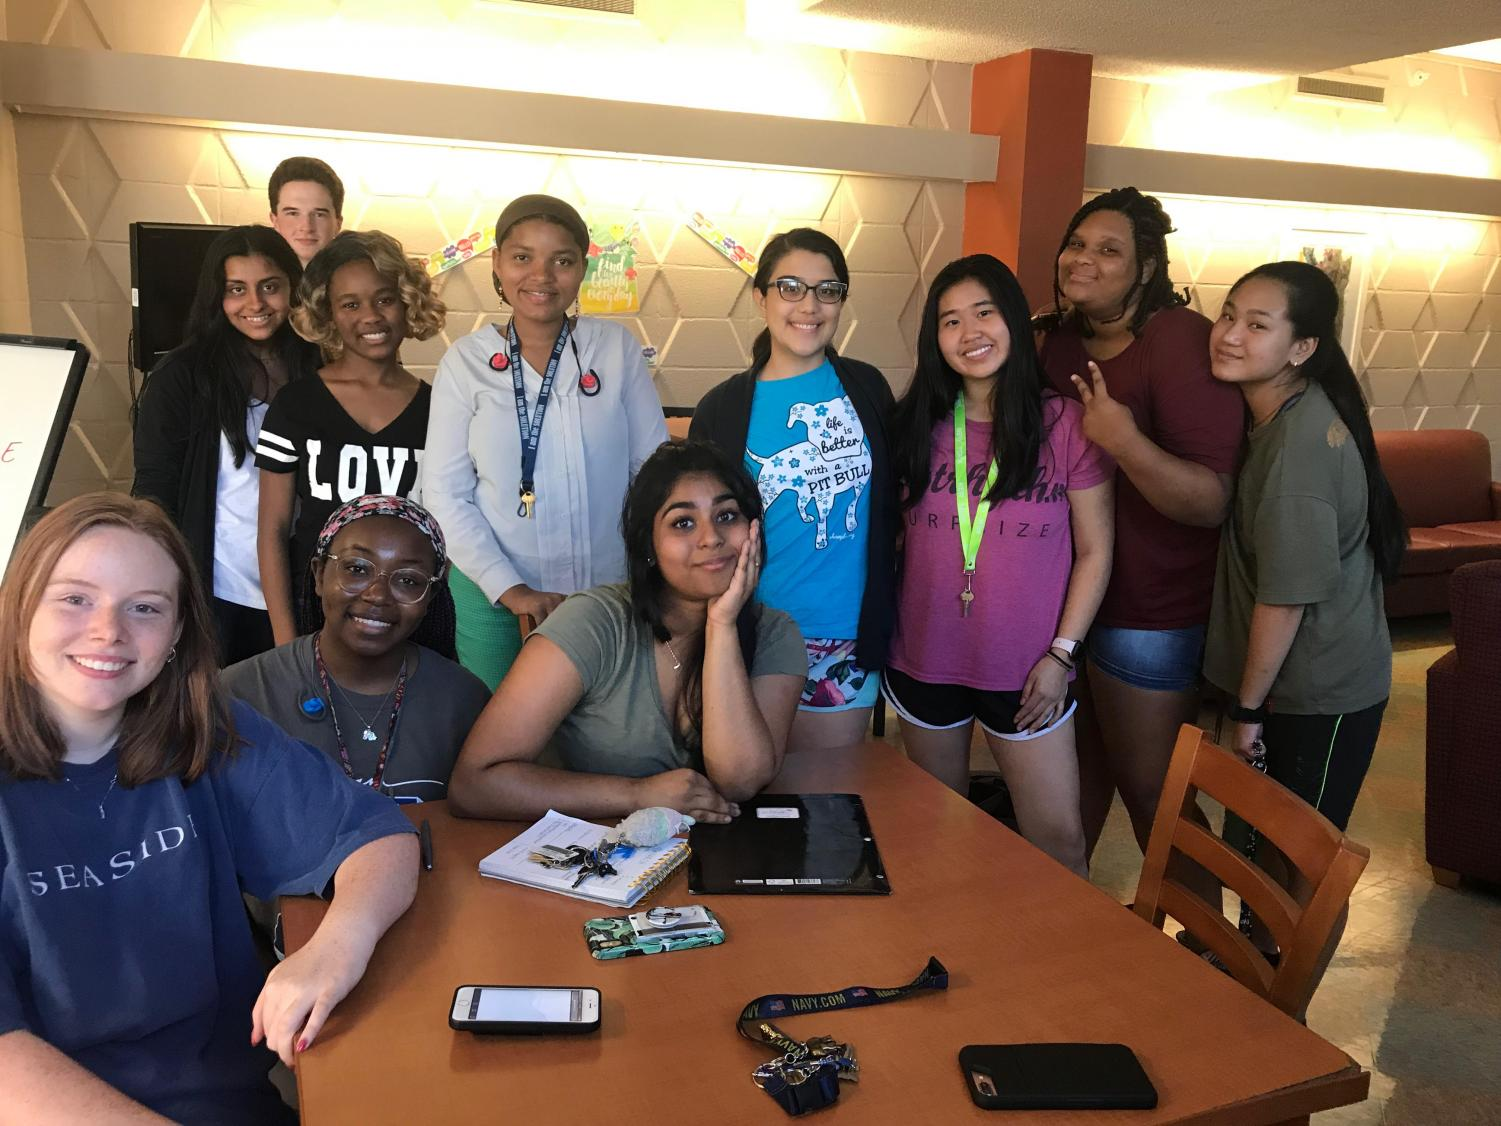 Revived by senior Bryonie Mandal, the Naach Club held their first meeting in Goen lobby.